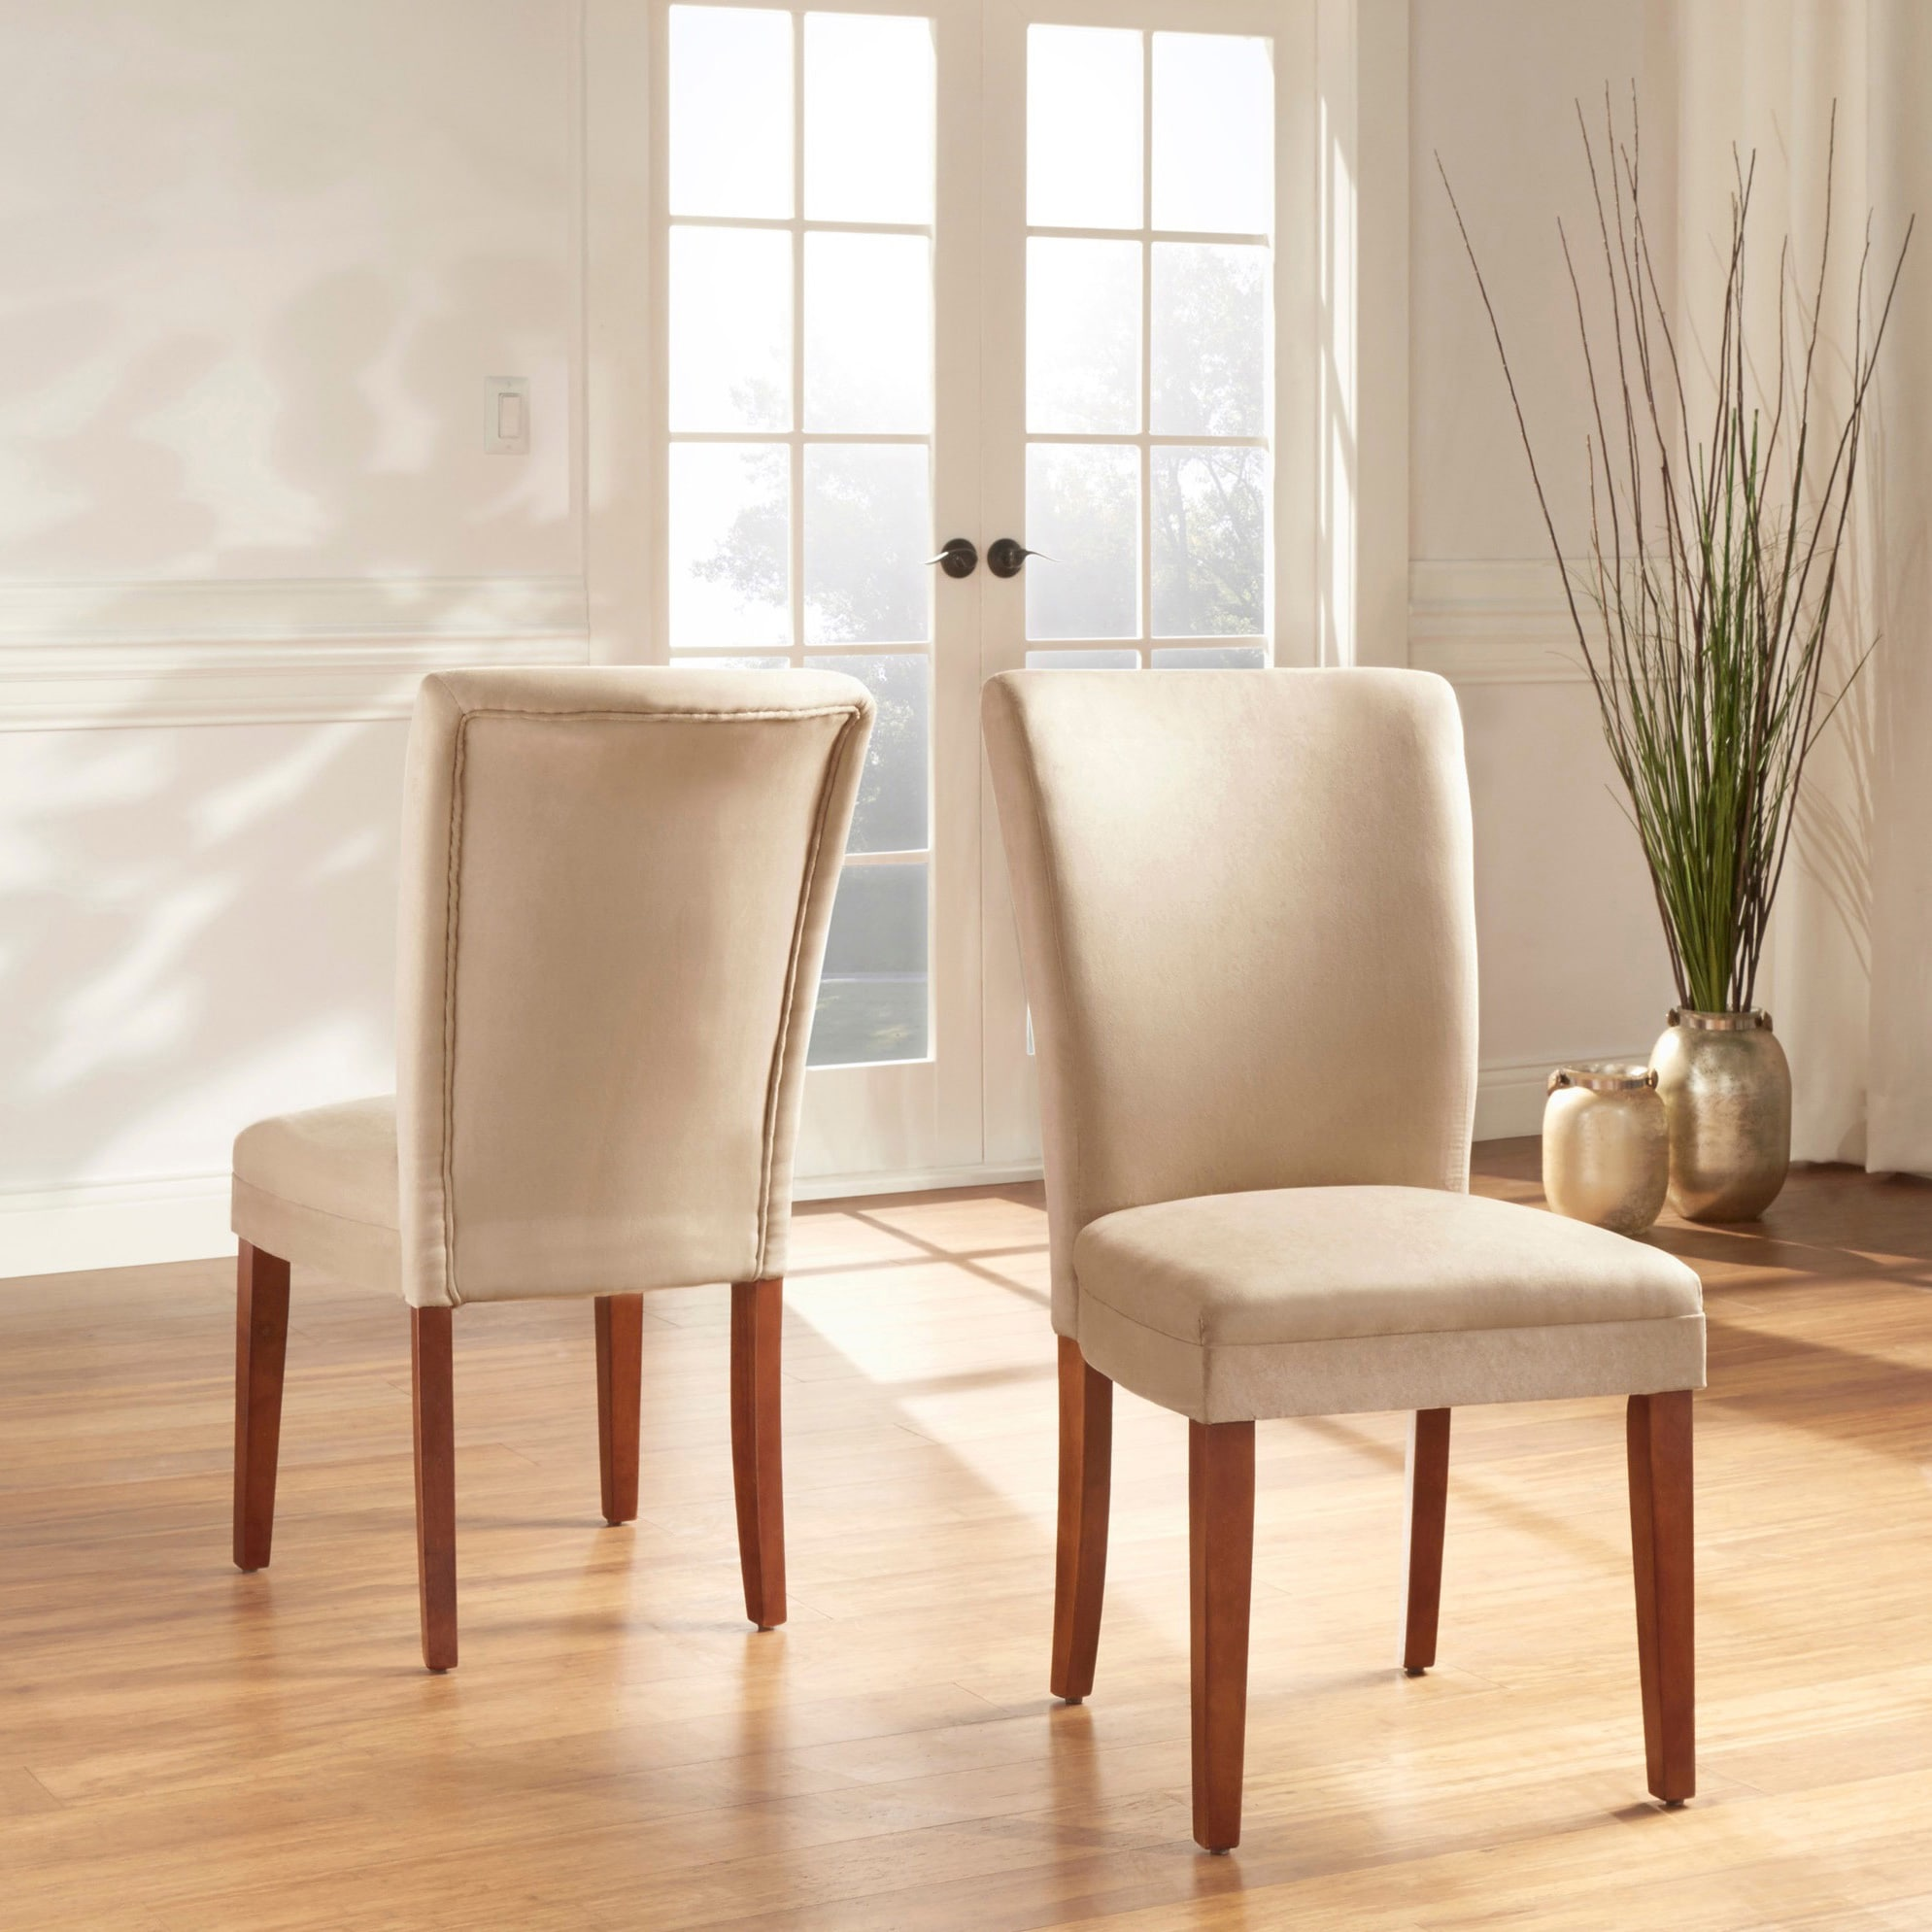 Parson Classic Upholstered Dining Chair (Set Of 2) By INSPIRE Q Bold (5